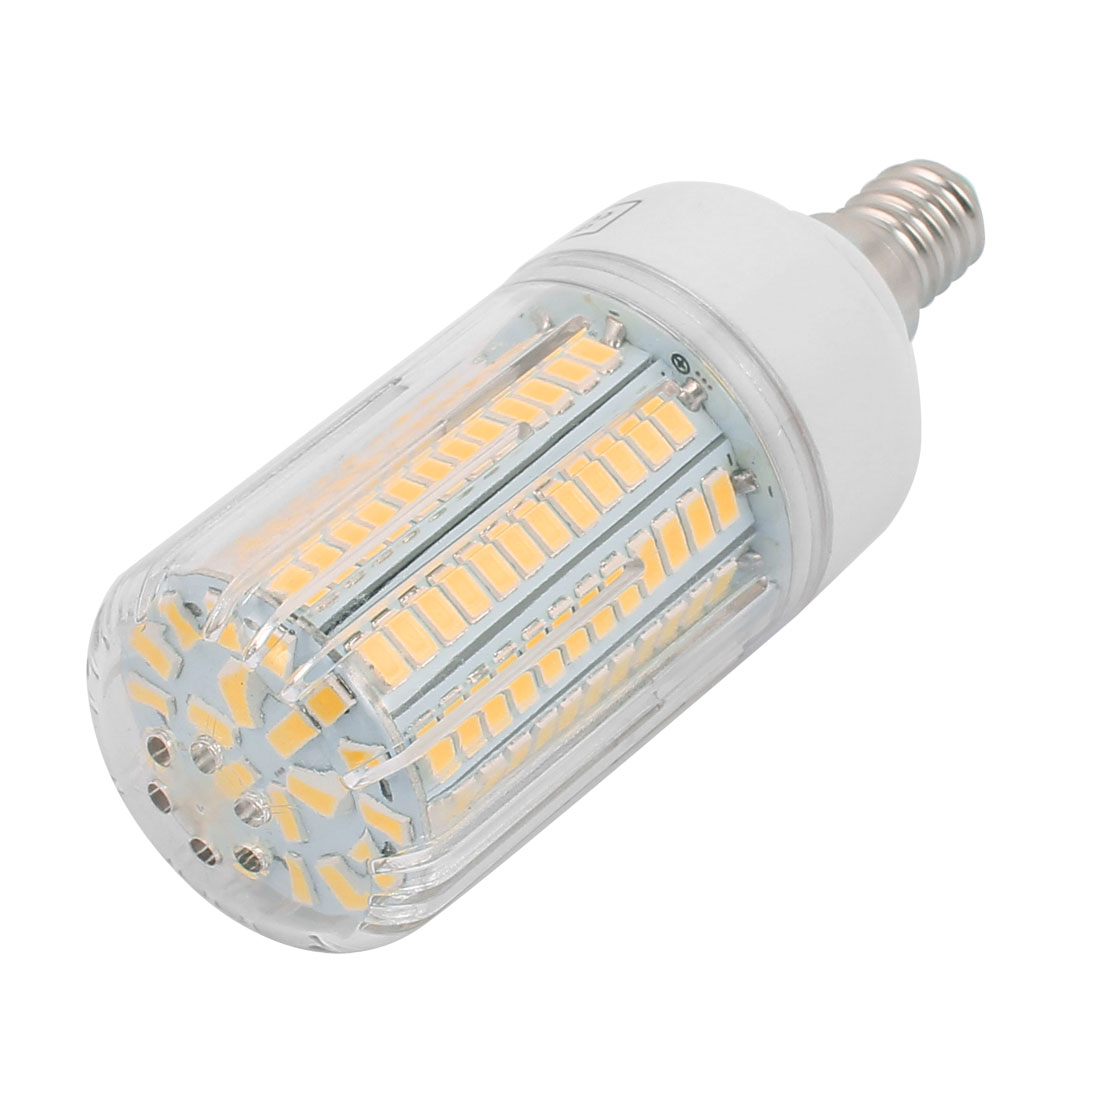 AC110V 12W 136 x 5736SMD E14 LED Corn Bulb Light Lamp Energy Saving Warm White